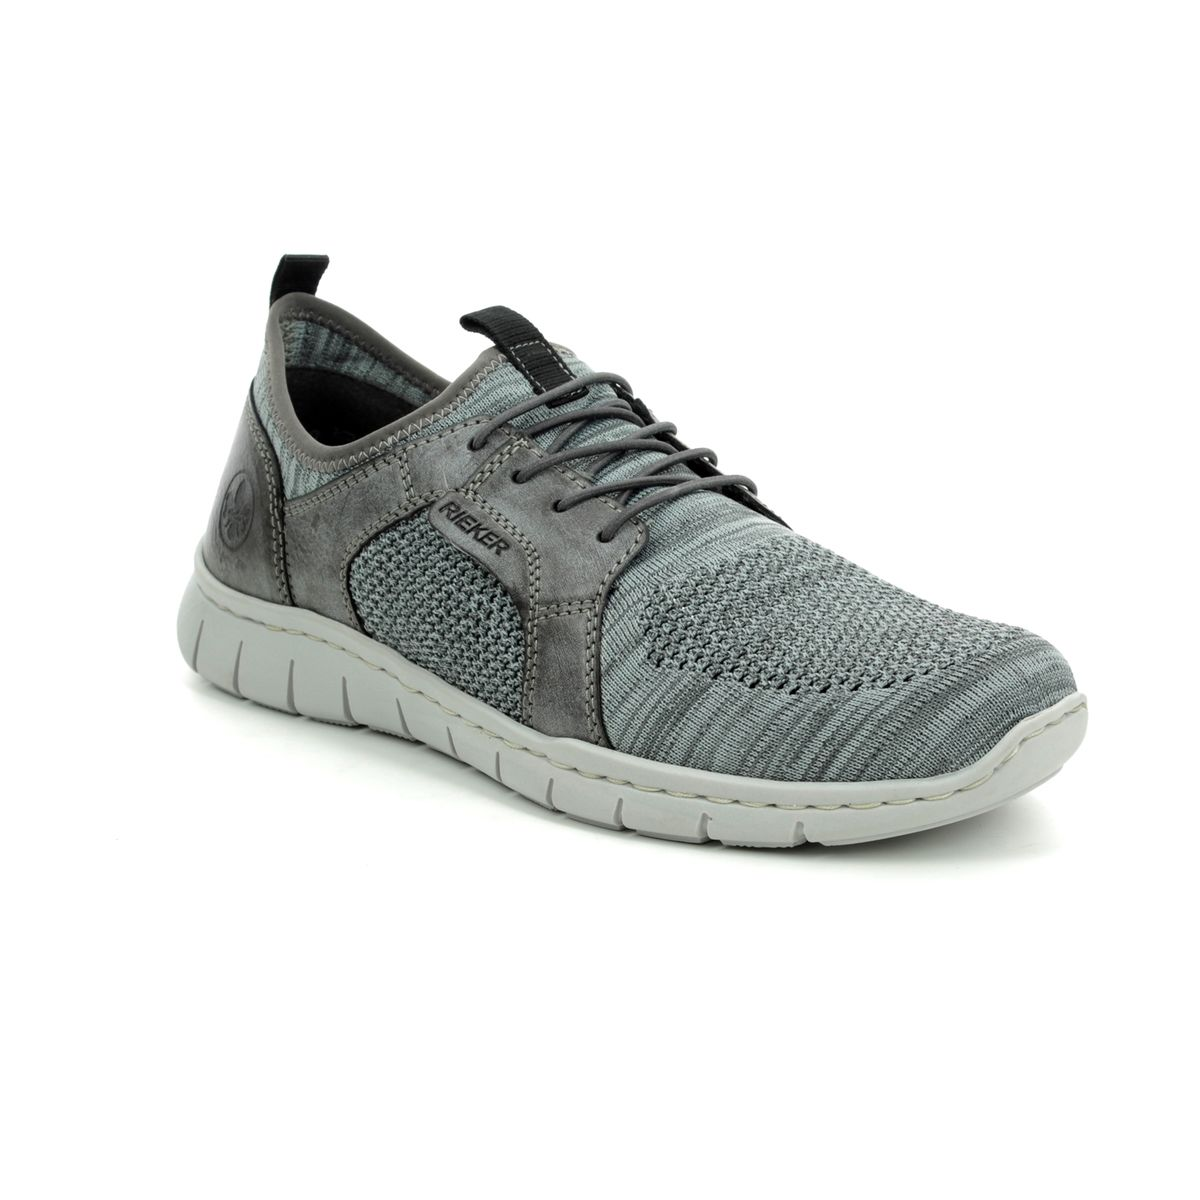 225e31b4cd8daa Rieker Trainers - Grey - B8775-42 FLEX SLIPON